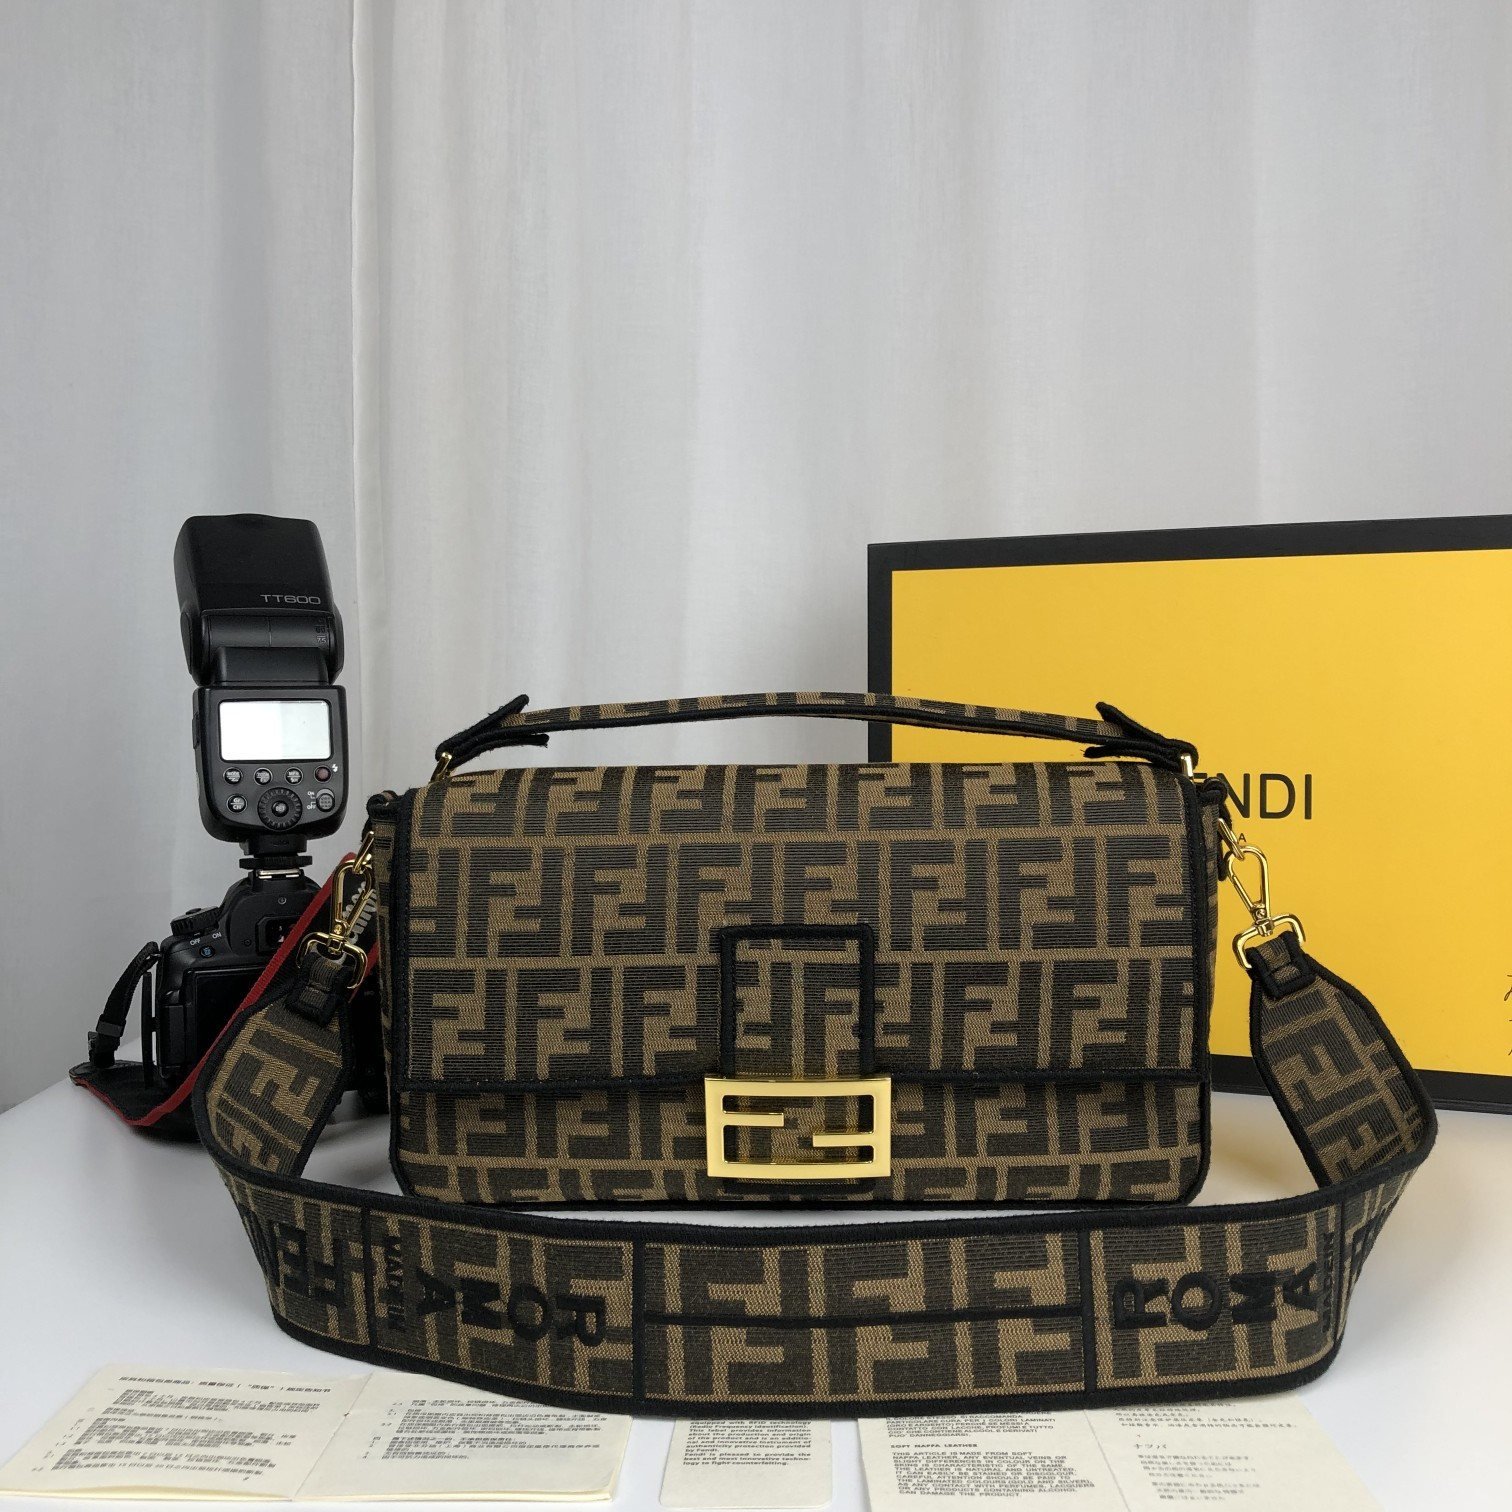 Replica Fendi Baguette Brown Fabric Large Bag with Flap and FF Fastening with Magnetic Clasp